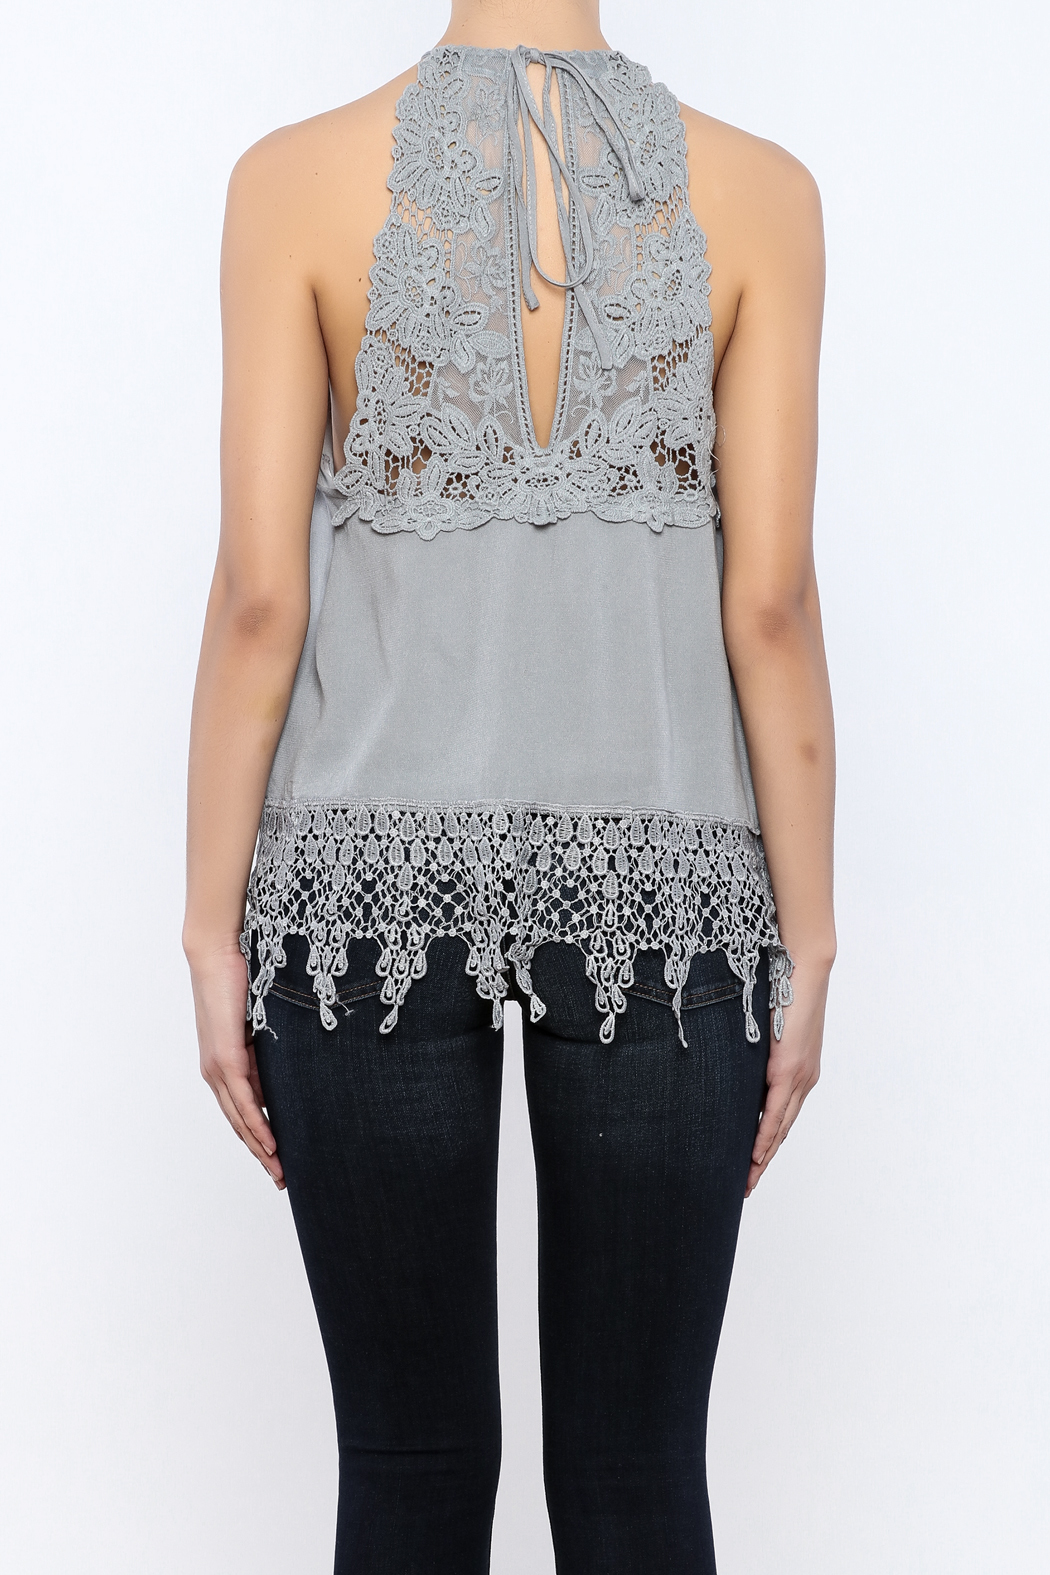 Bacio Lace Back Halter Top - Back Cropped Image